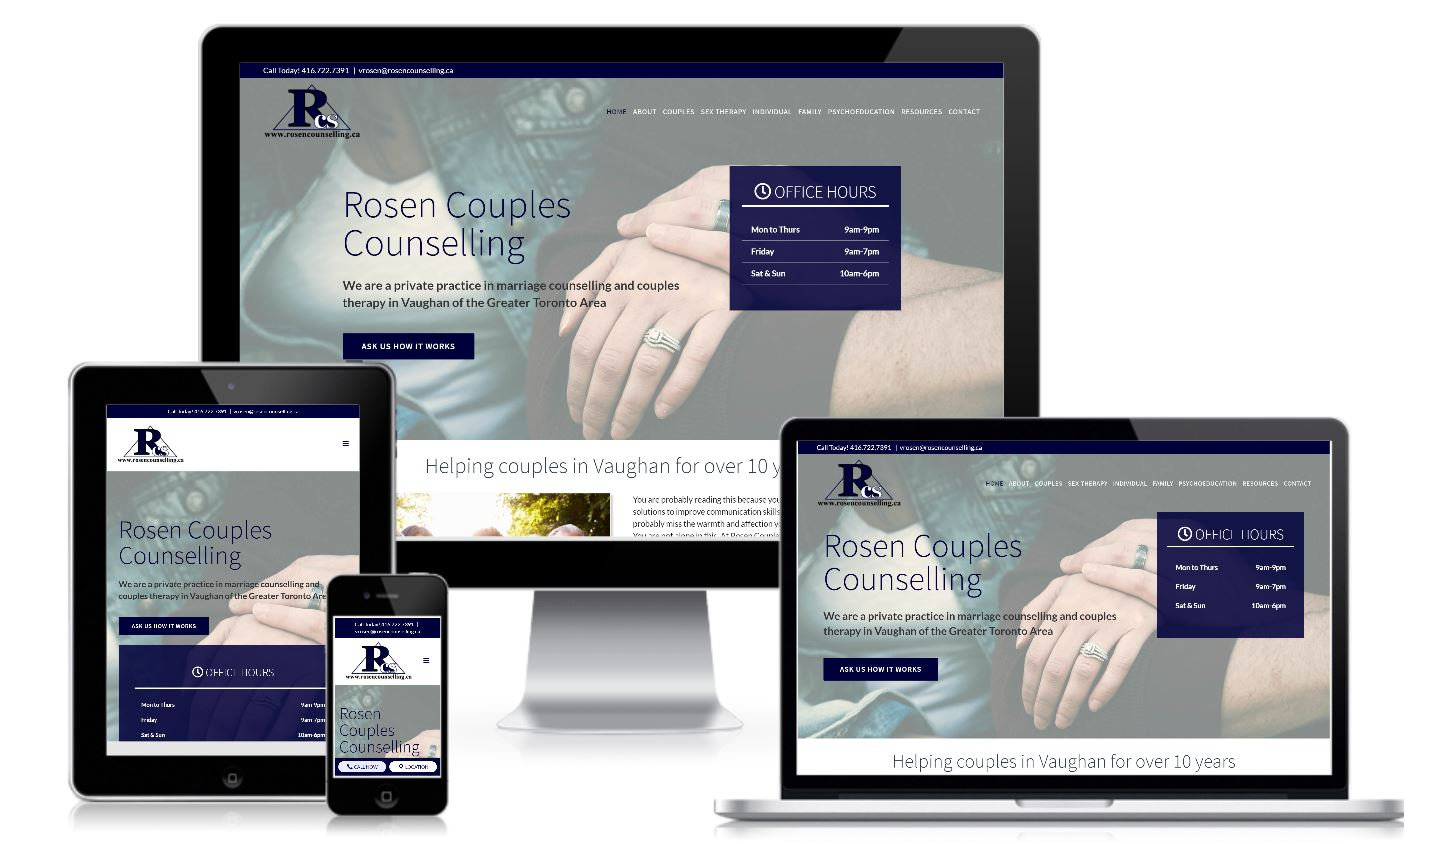 Rosen Couples Counselling Torornto Website Redesign Case Study